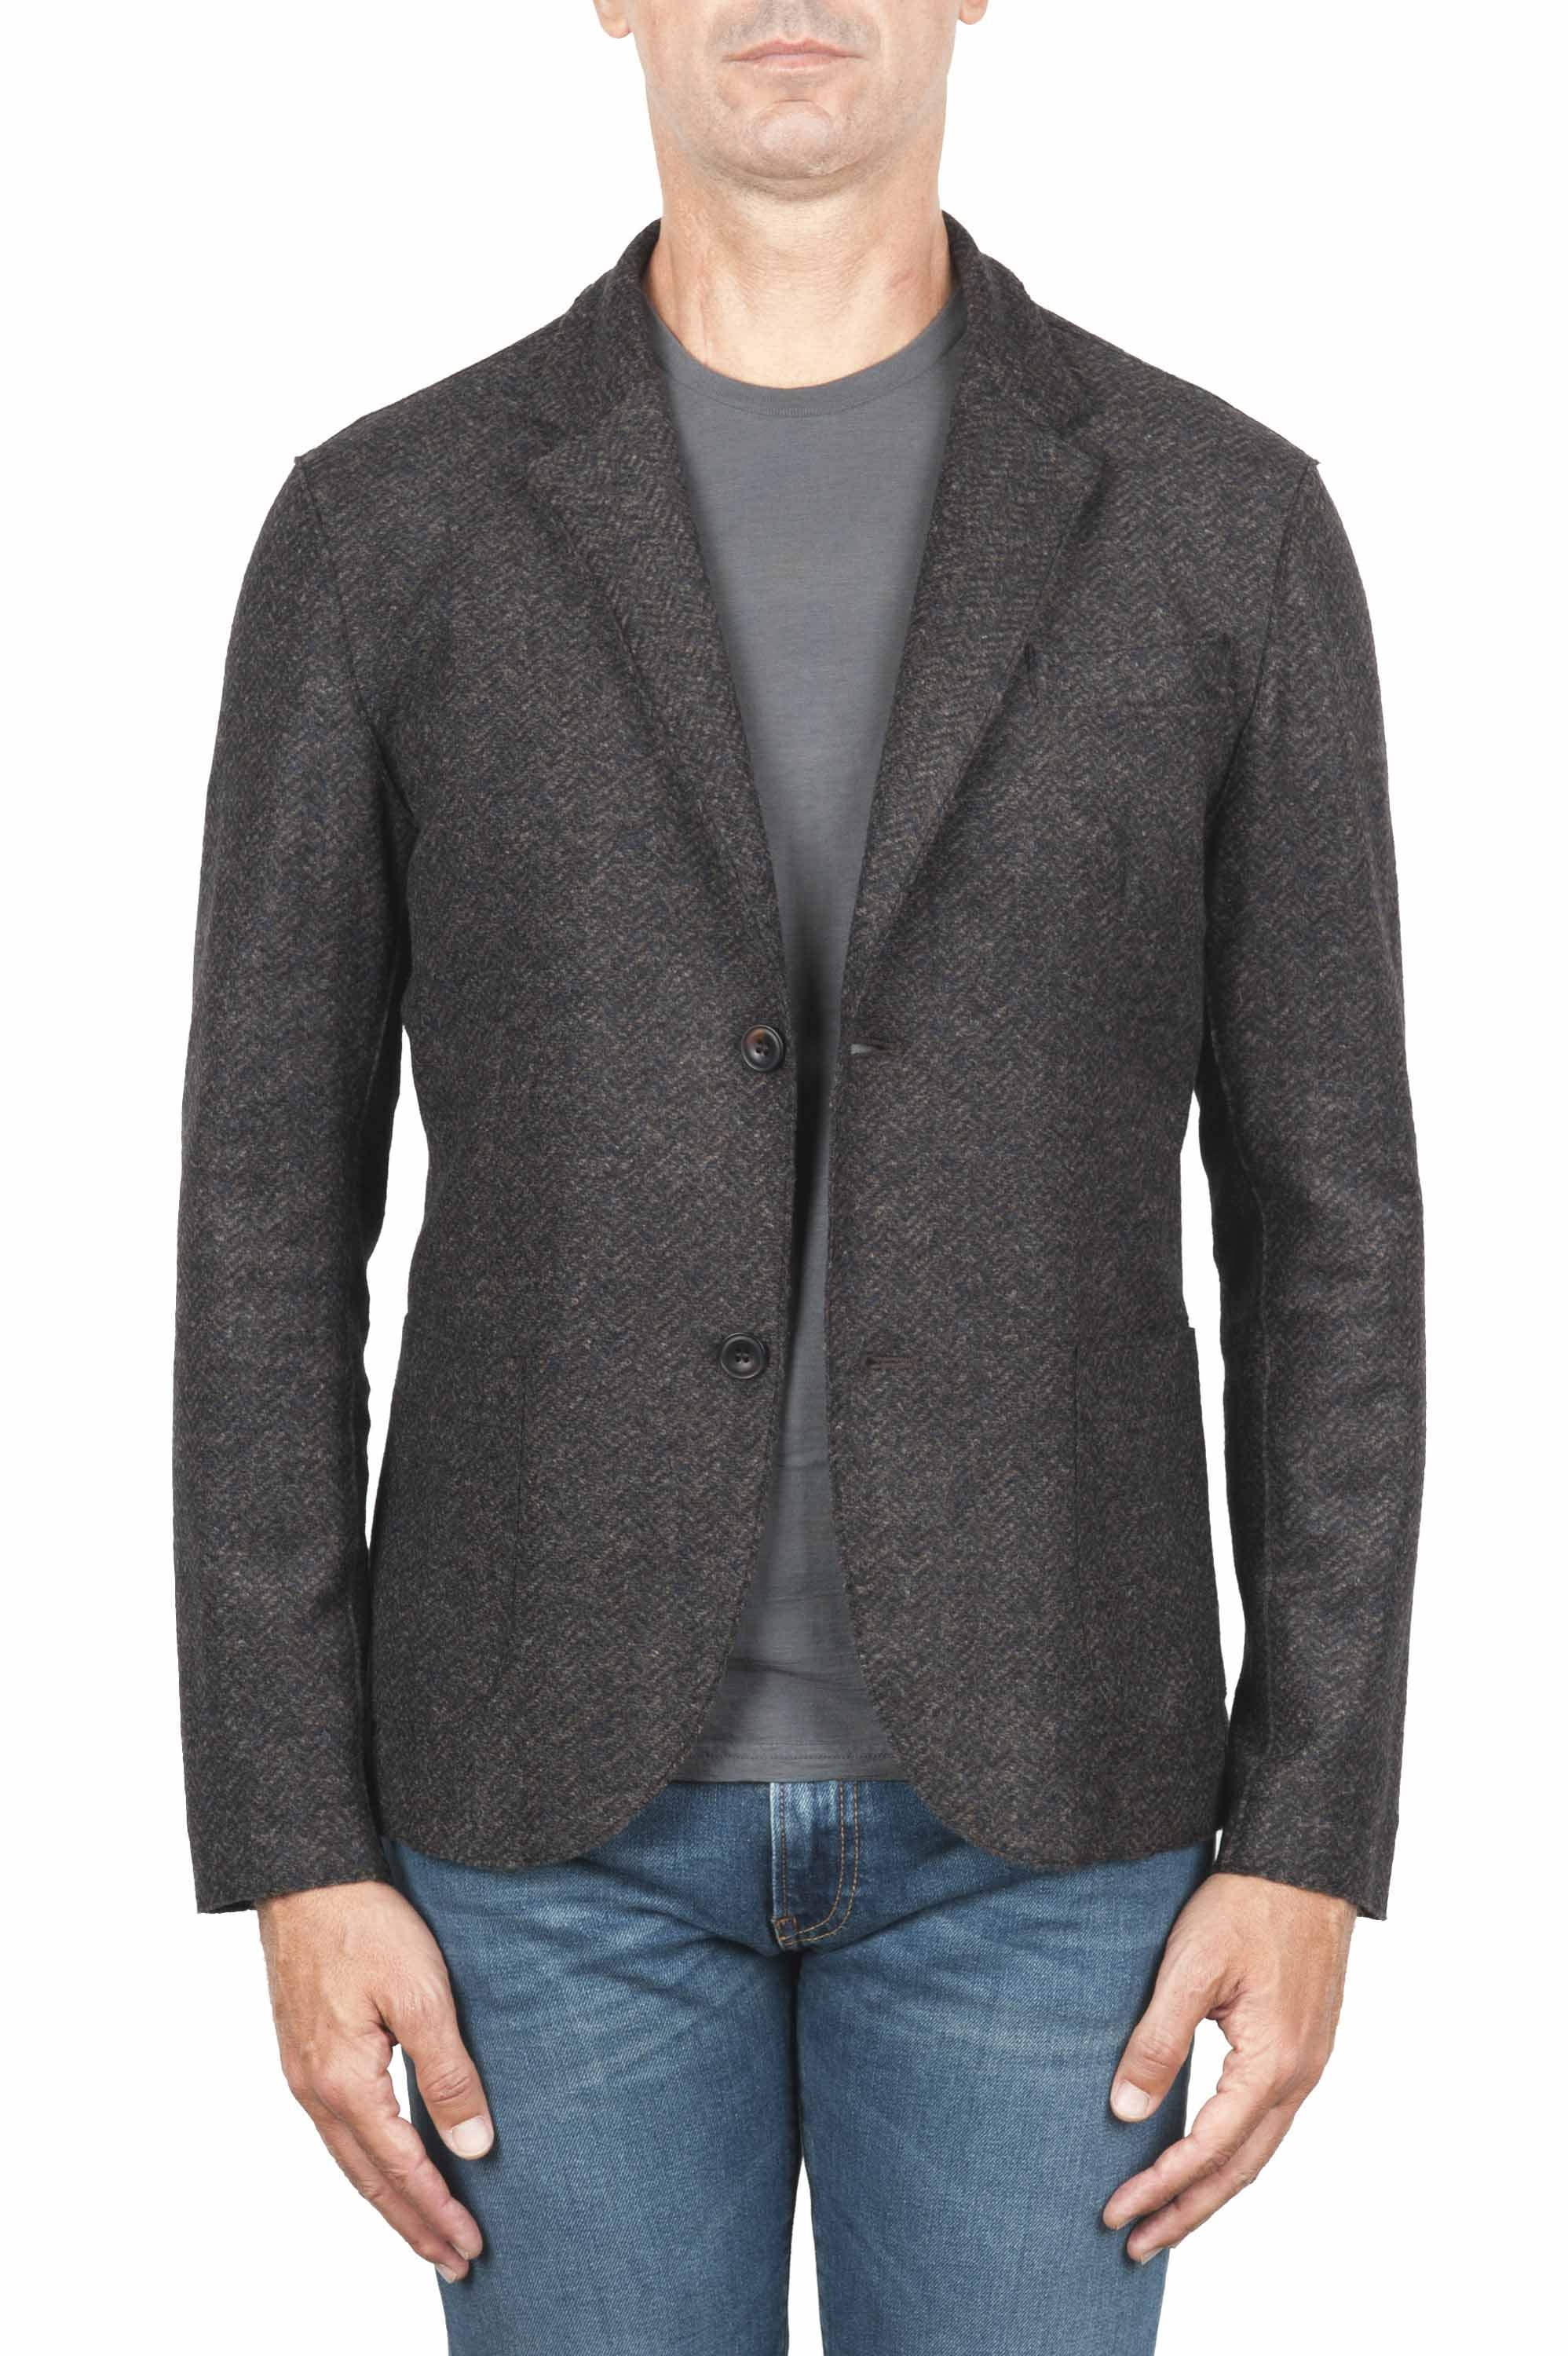 SBU 03104_2020AW Brown wool blend sport jacket unconstructed and unlined 01